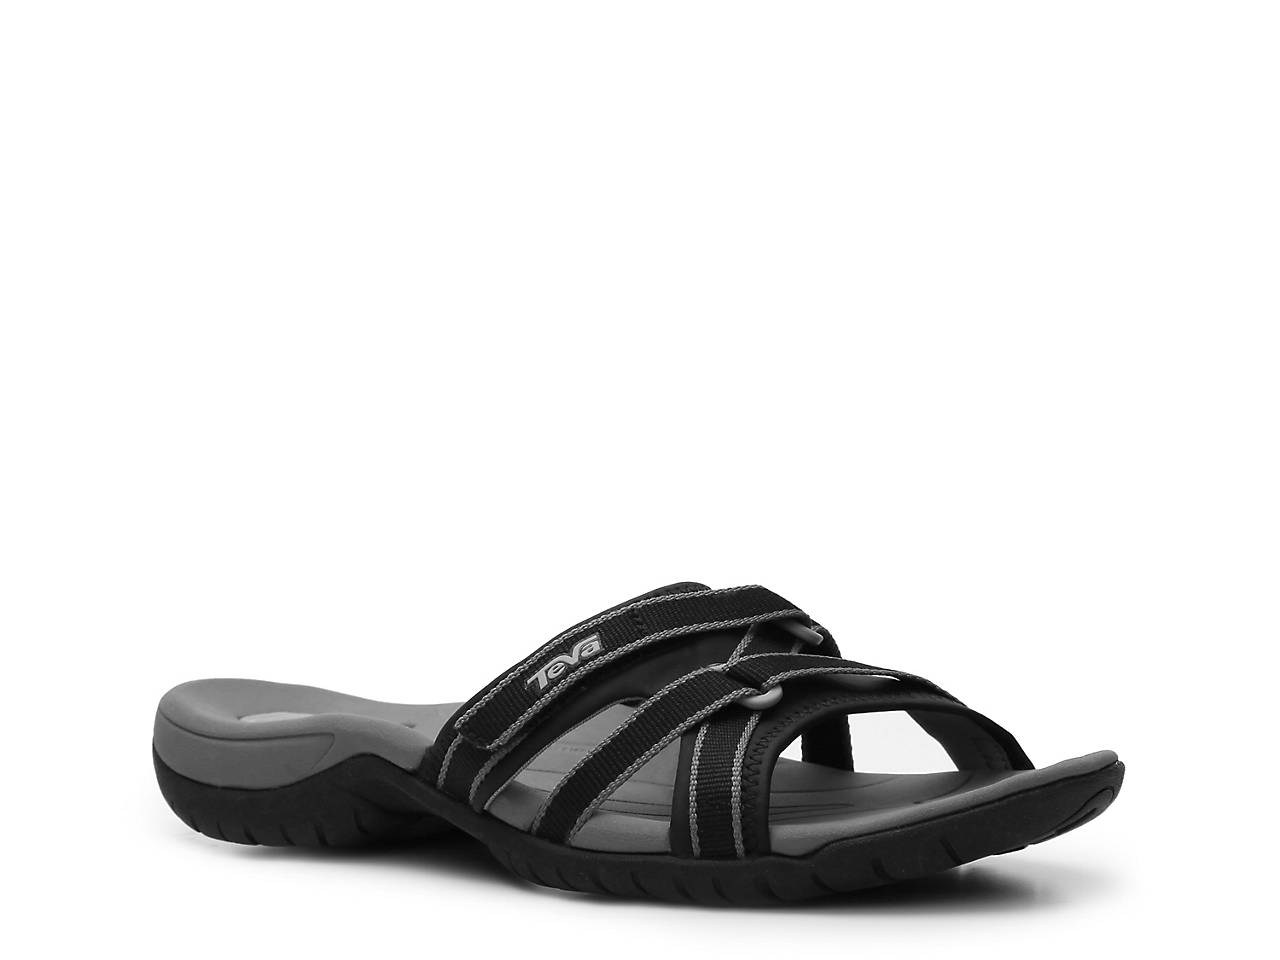 fe0cbc421 Teva Tirra Slide Sport Sandal Women s Shoes